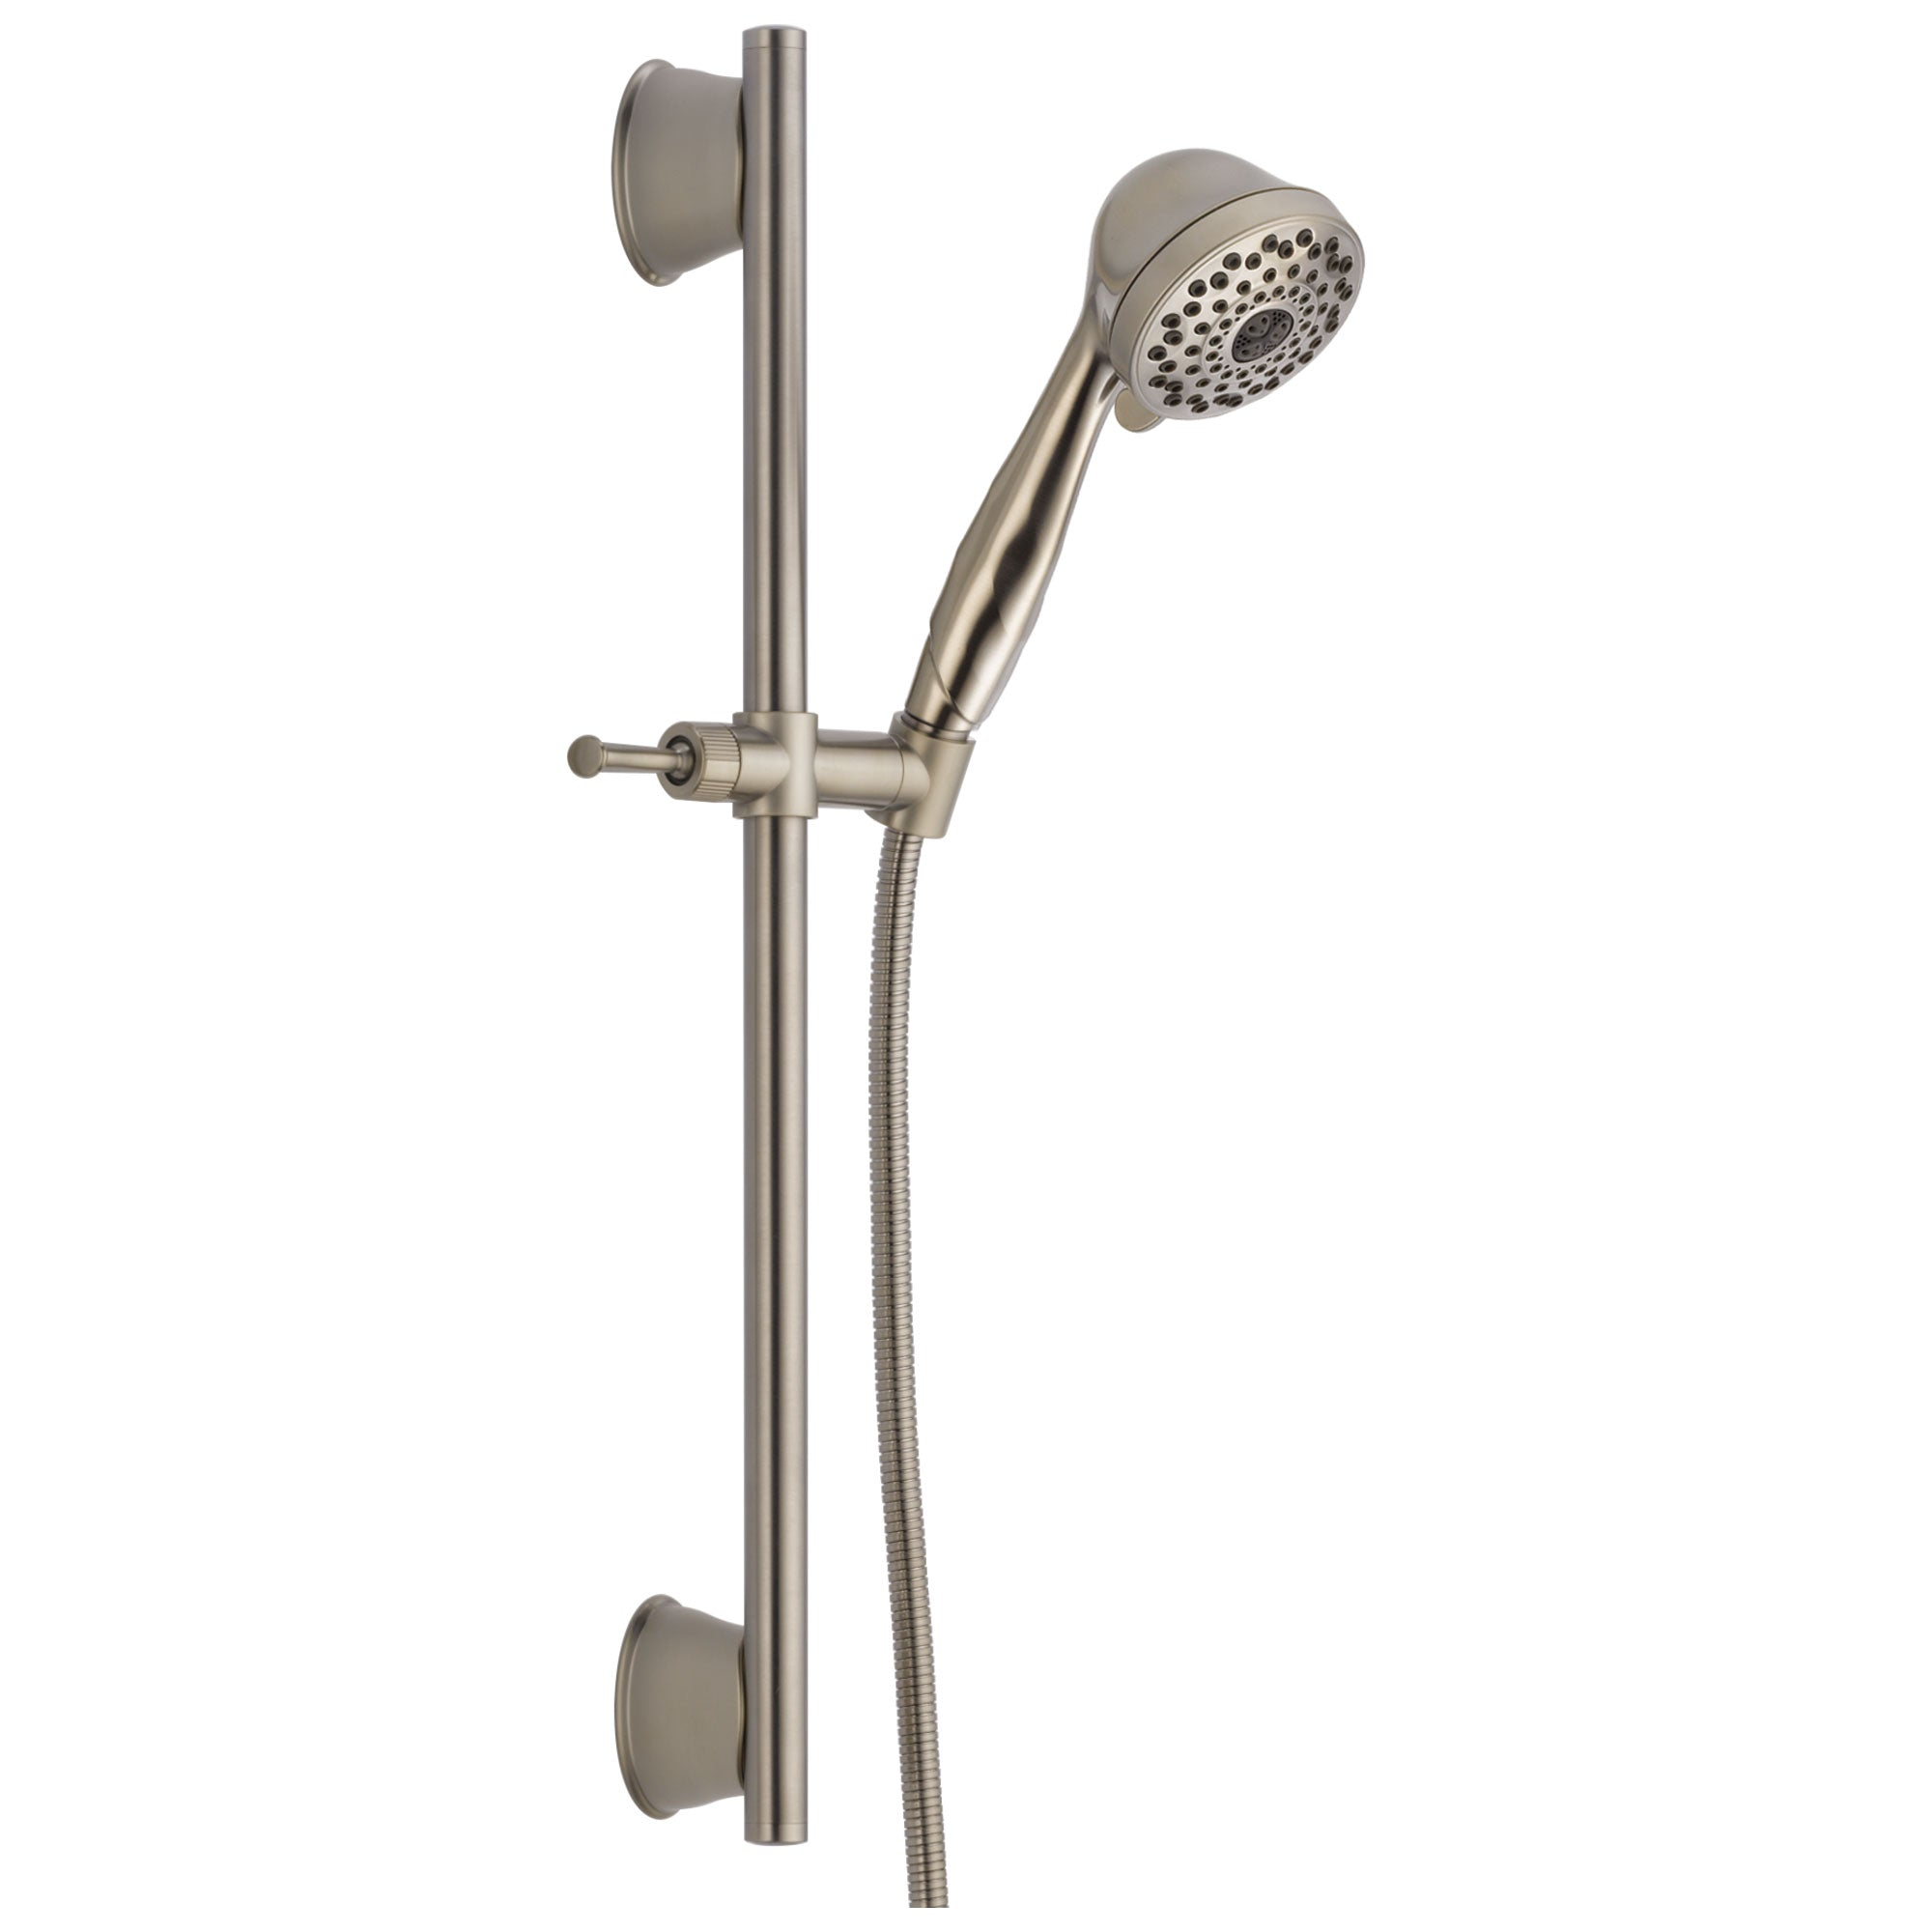 Delta Universal Showering Components Collection Stainless Steel Finish Watersense Wall Mount Hand Shower Spray with Slidebar and Hose D51589SS